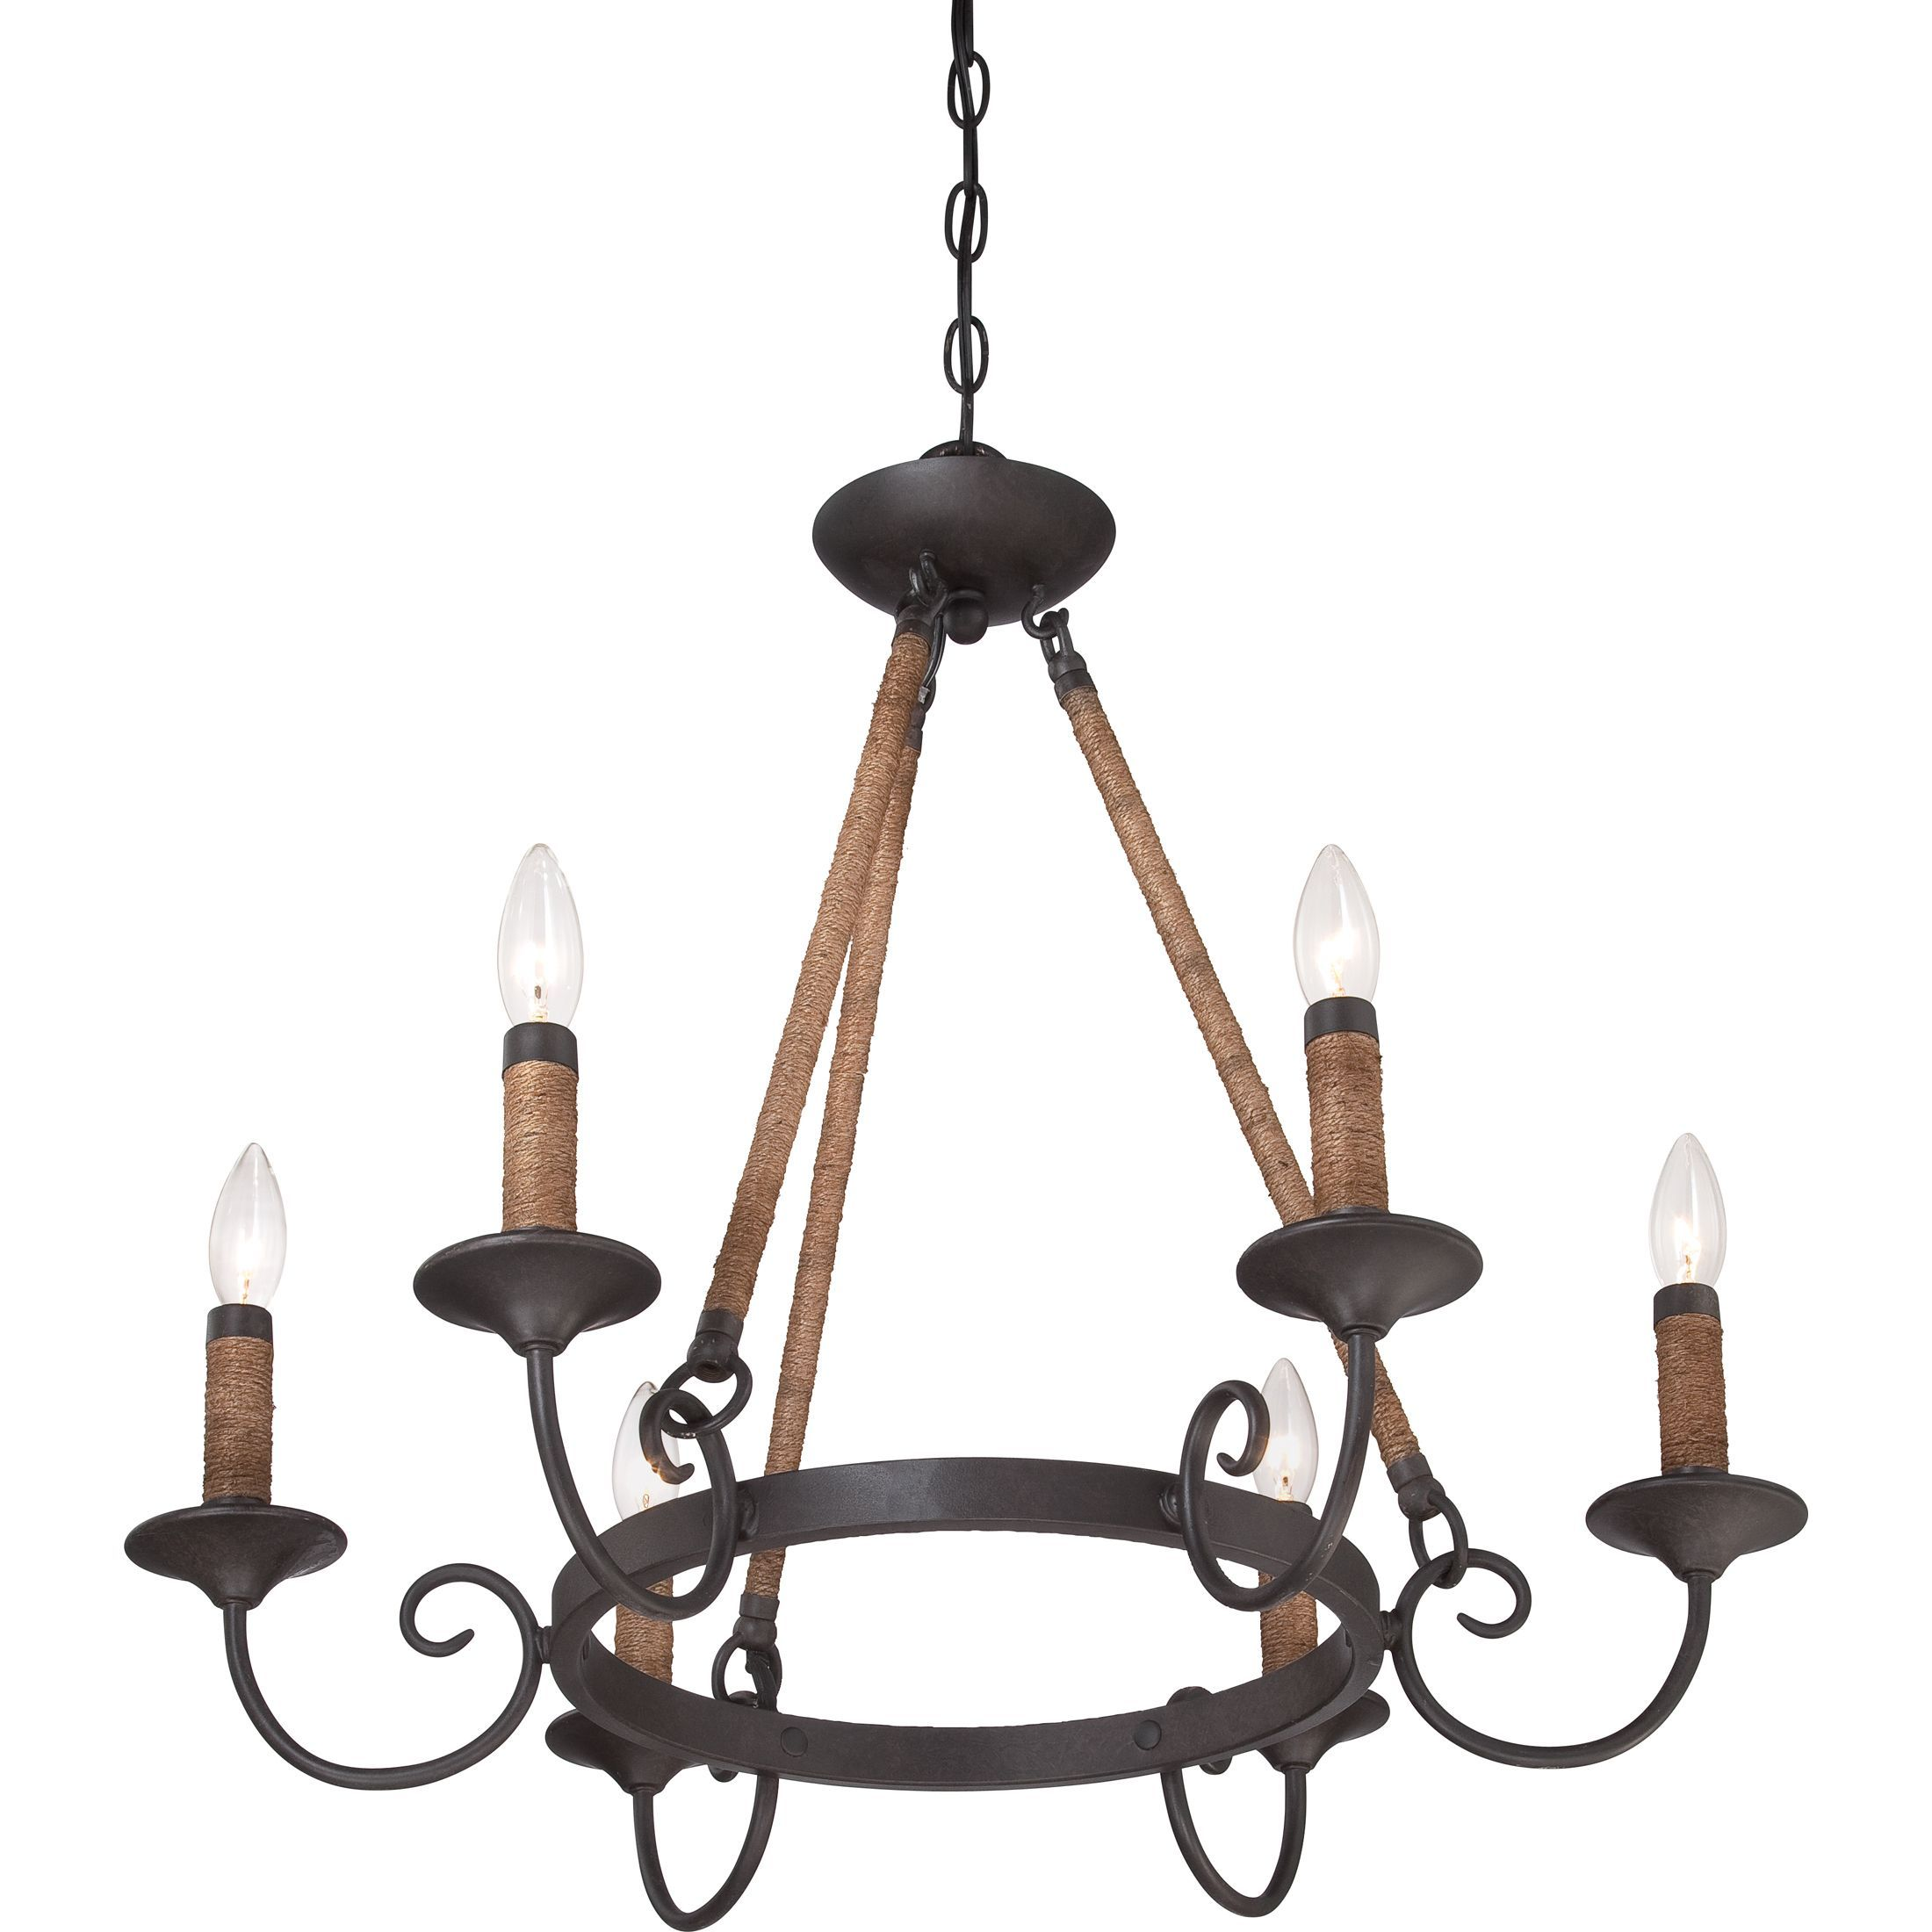 Quoizel Bandelier 6 light Imperial Bronze Chandelier Imperial